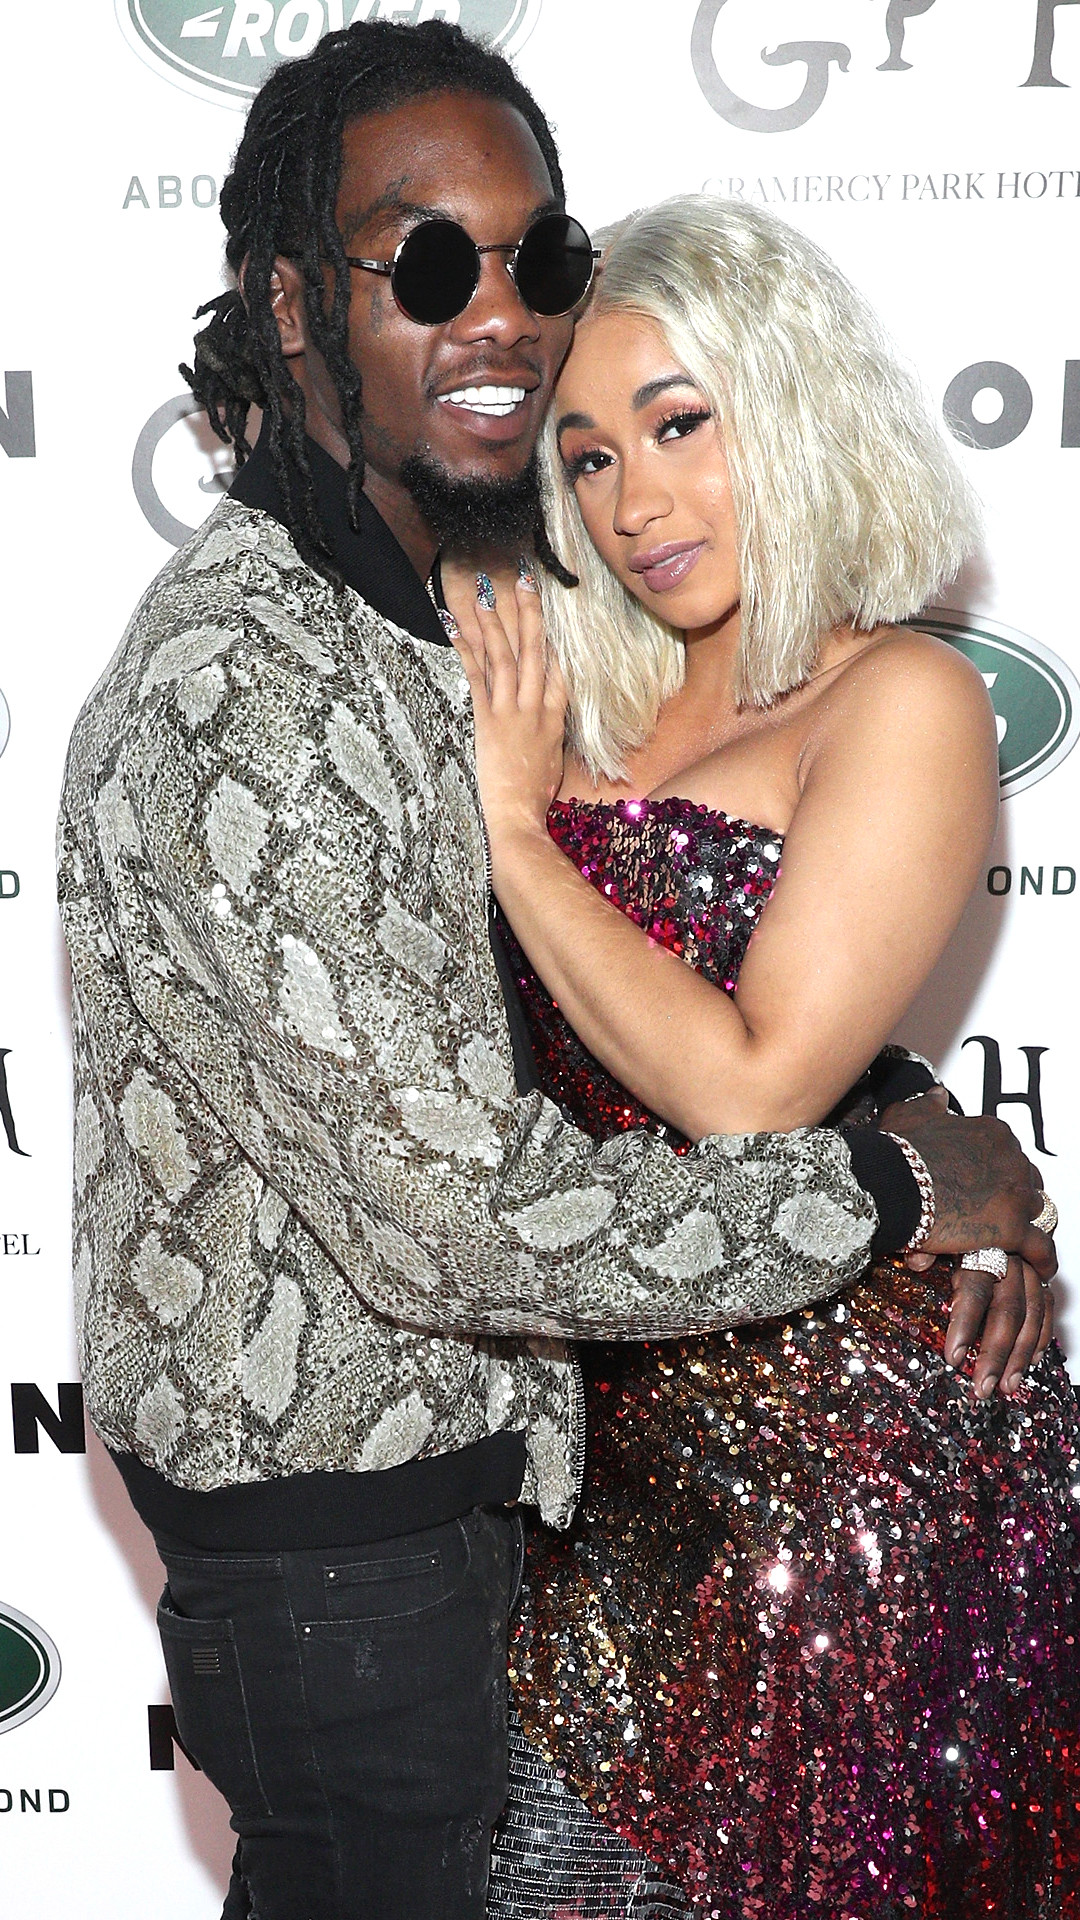 Cardi B Is Pregnant Expecting First Child With Fiance Offset